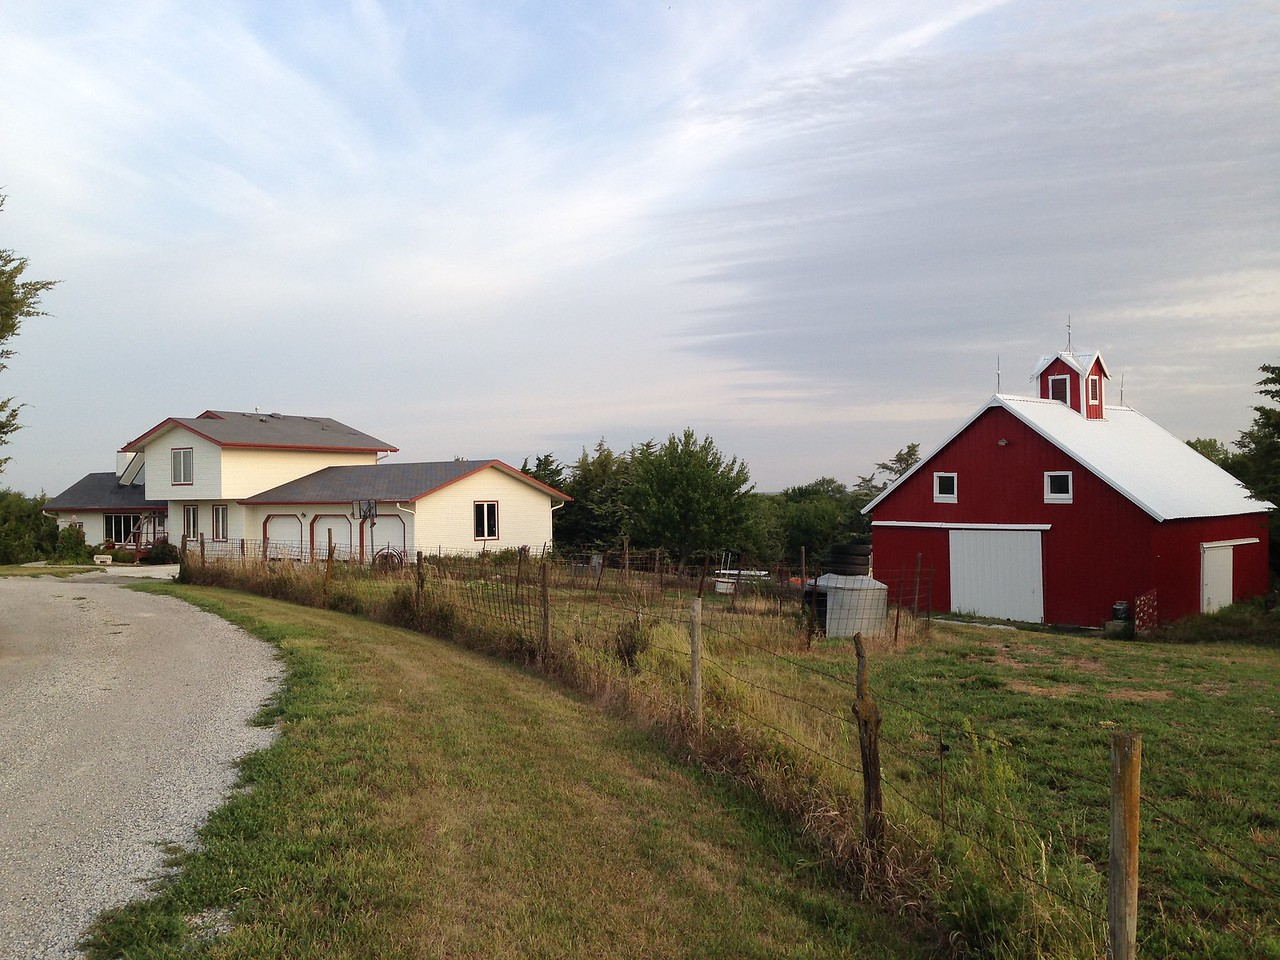 After crossing Illinois and northern Missouri, I came through some torrential rains to Beatrice, Nebraska: farmhouse of Kristin, my Air BnB host for the night before the eclipse. Nebraska was hopping! Bill Nye the Science Guy was even in Beatrice for the event!